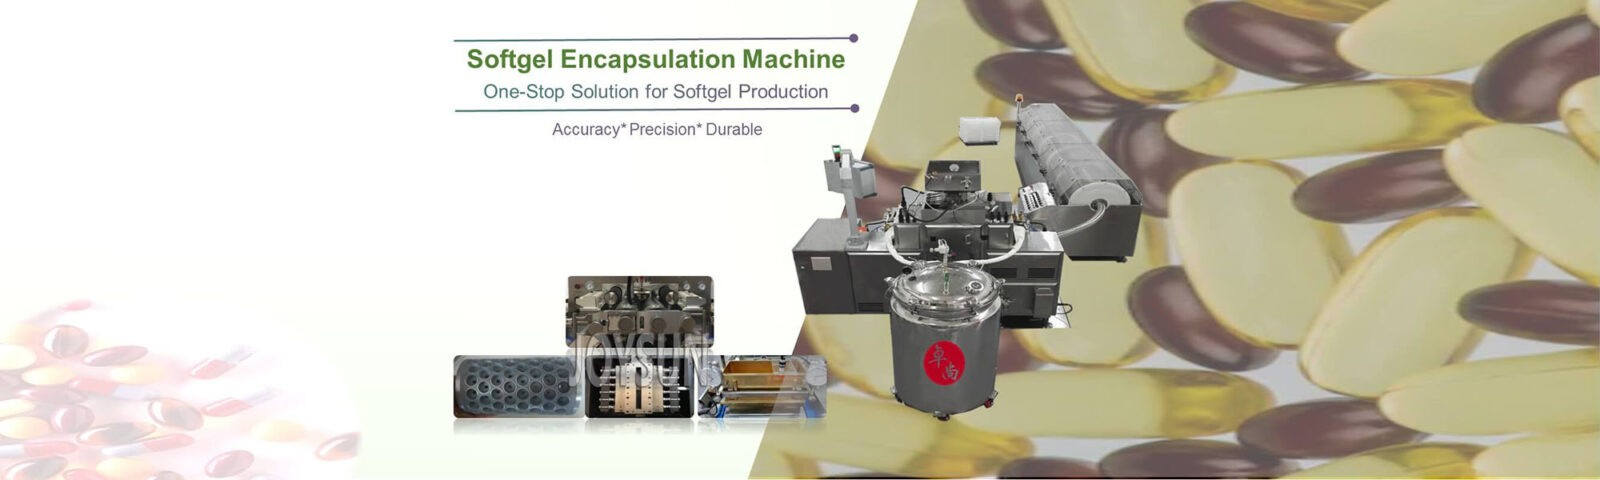 softgel-encapsulation-machine-manufacturer-supplier